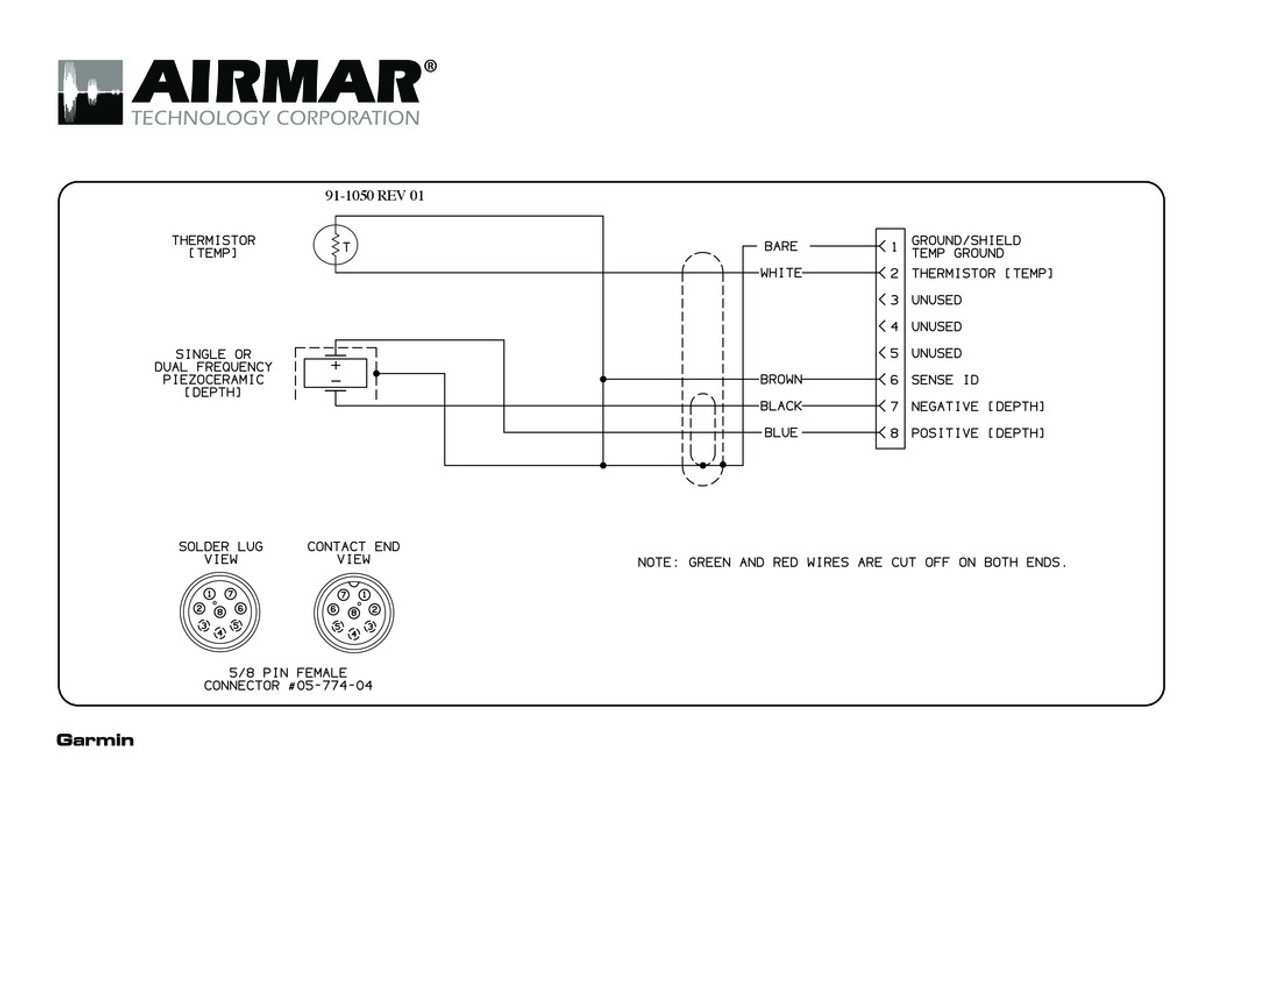 Airmar Wiring Diagram Garmin P319 8 pin (D,T) | Blue Bottle Marine